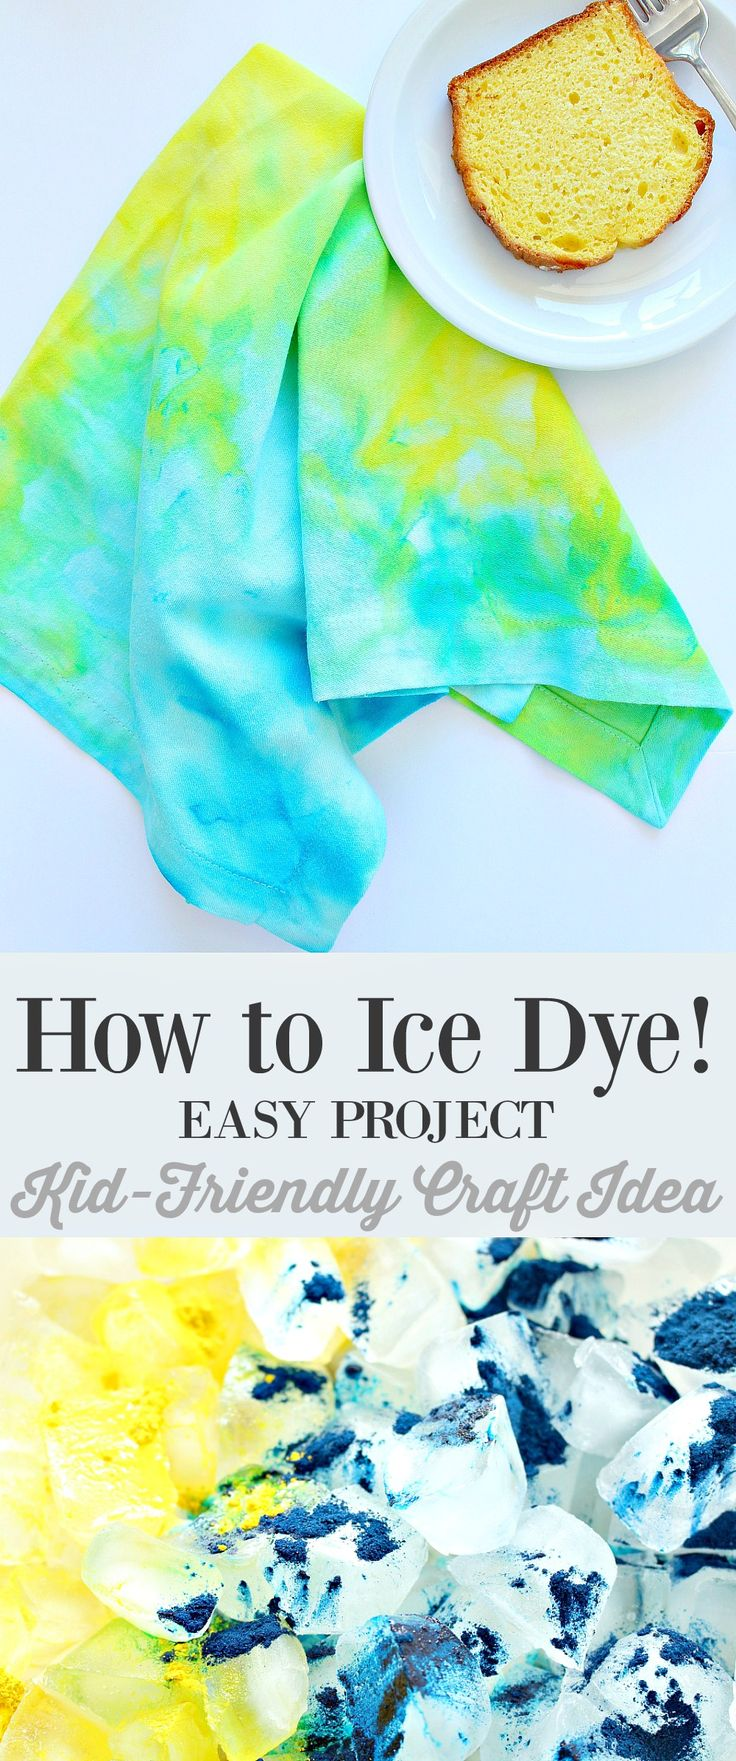 Learn how to ice dye - such a fun, kid-friendly craft idea // Easy DIY ice dyed napkin tutorial - click through too see different examples of the organic designs ice dyeing can create! Tutorial by @danslelakehouse